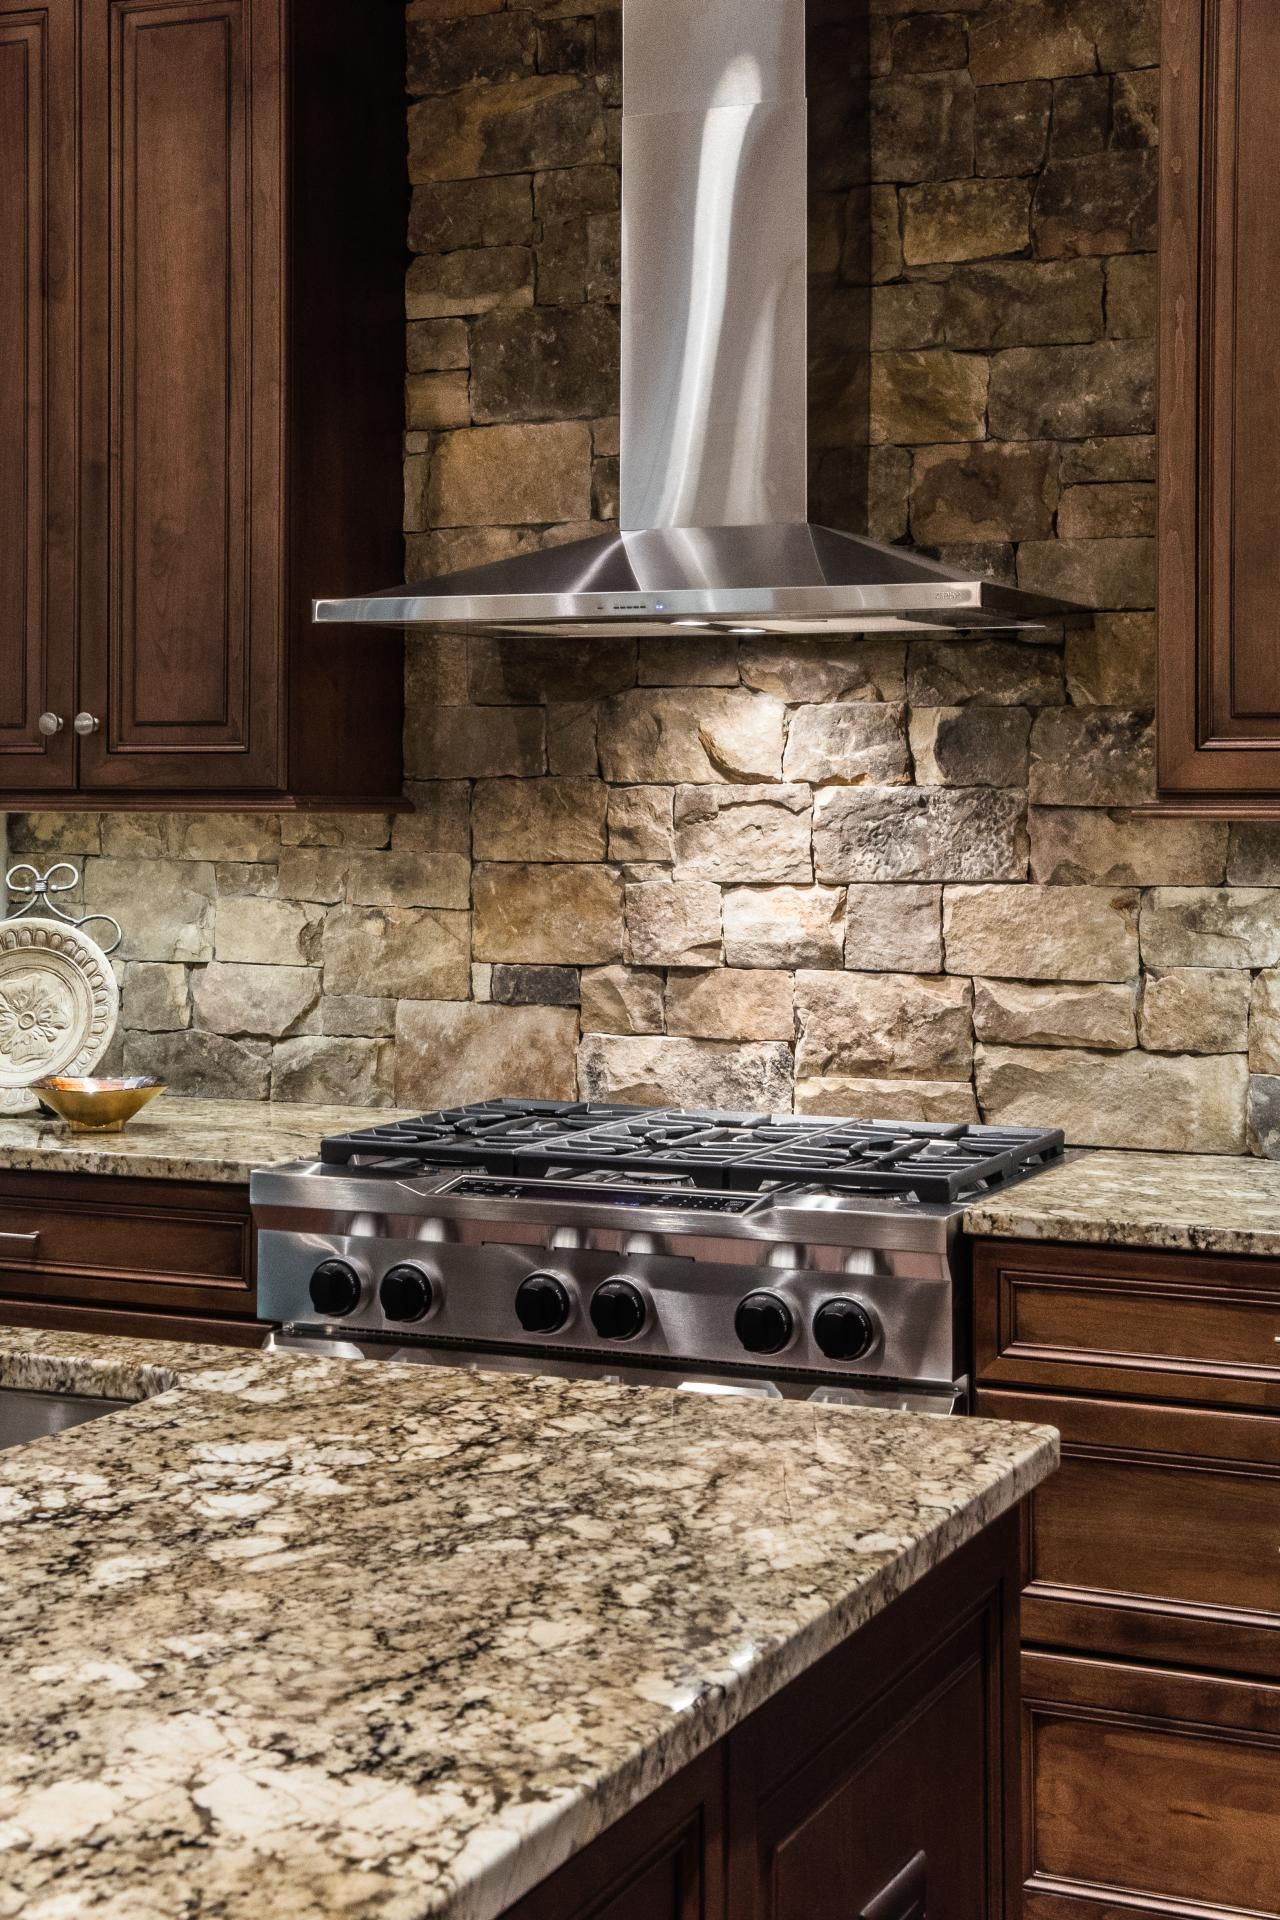 - A Stainless Steel Range Hood Is A Sleek, Contemporary Counterpoint